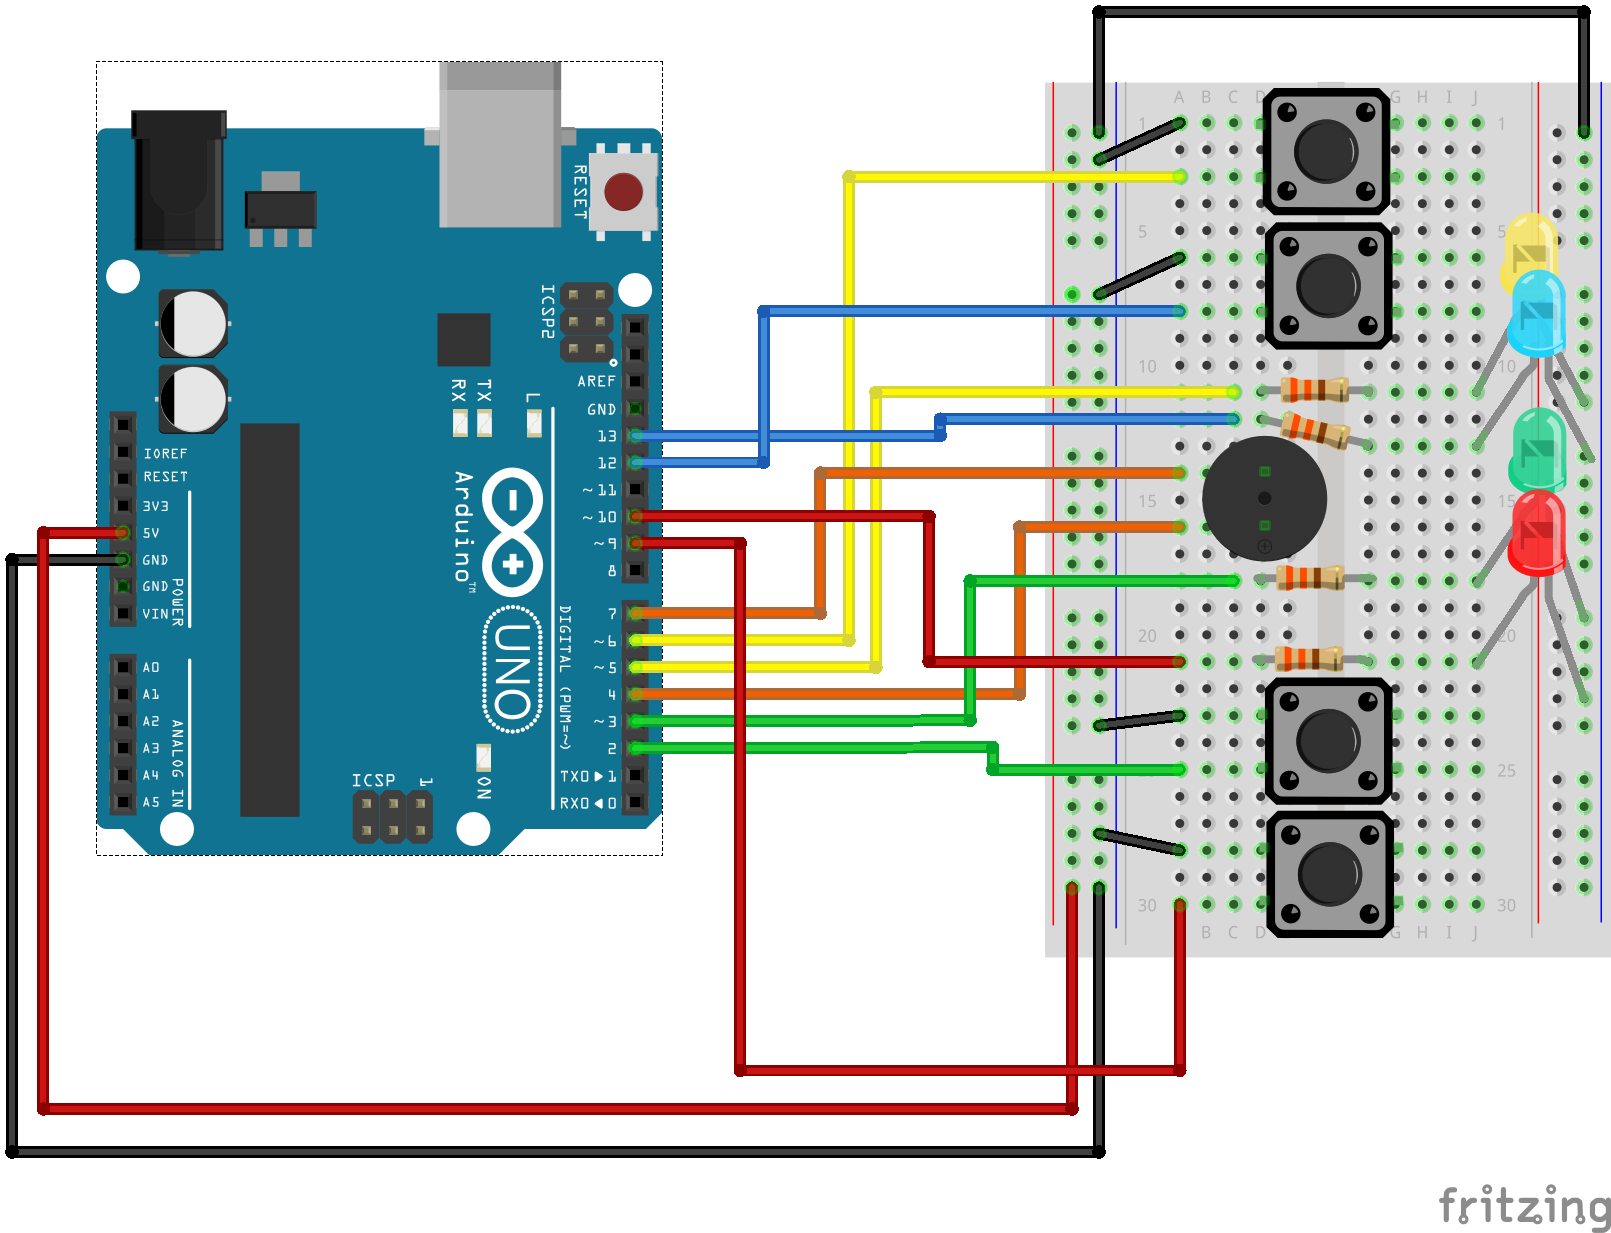 Sik Experiment Guide For Arduino V32 Use A 74ls00 Chip To Implement The Switch Debounce Circuit Alt Text